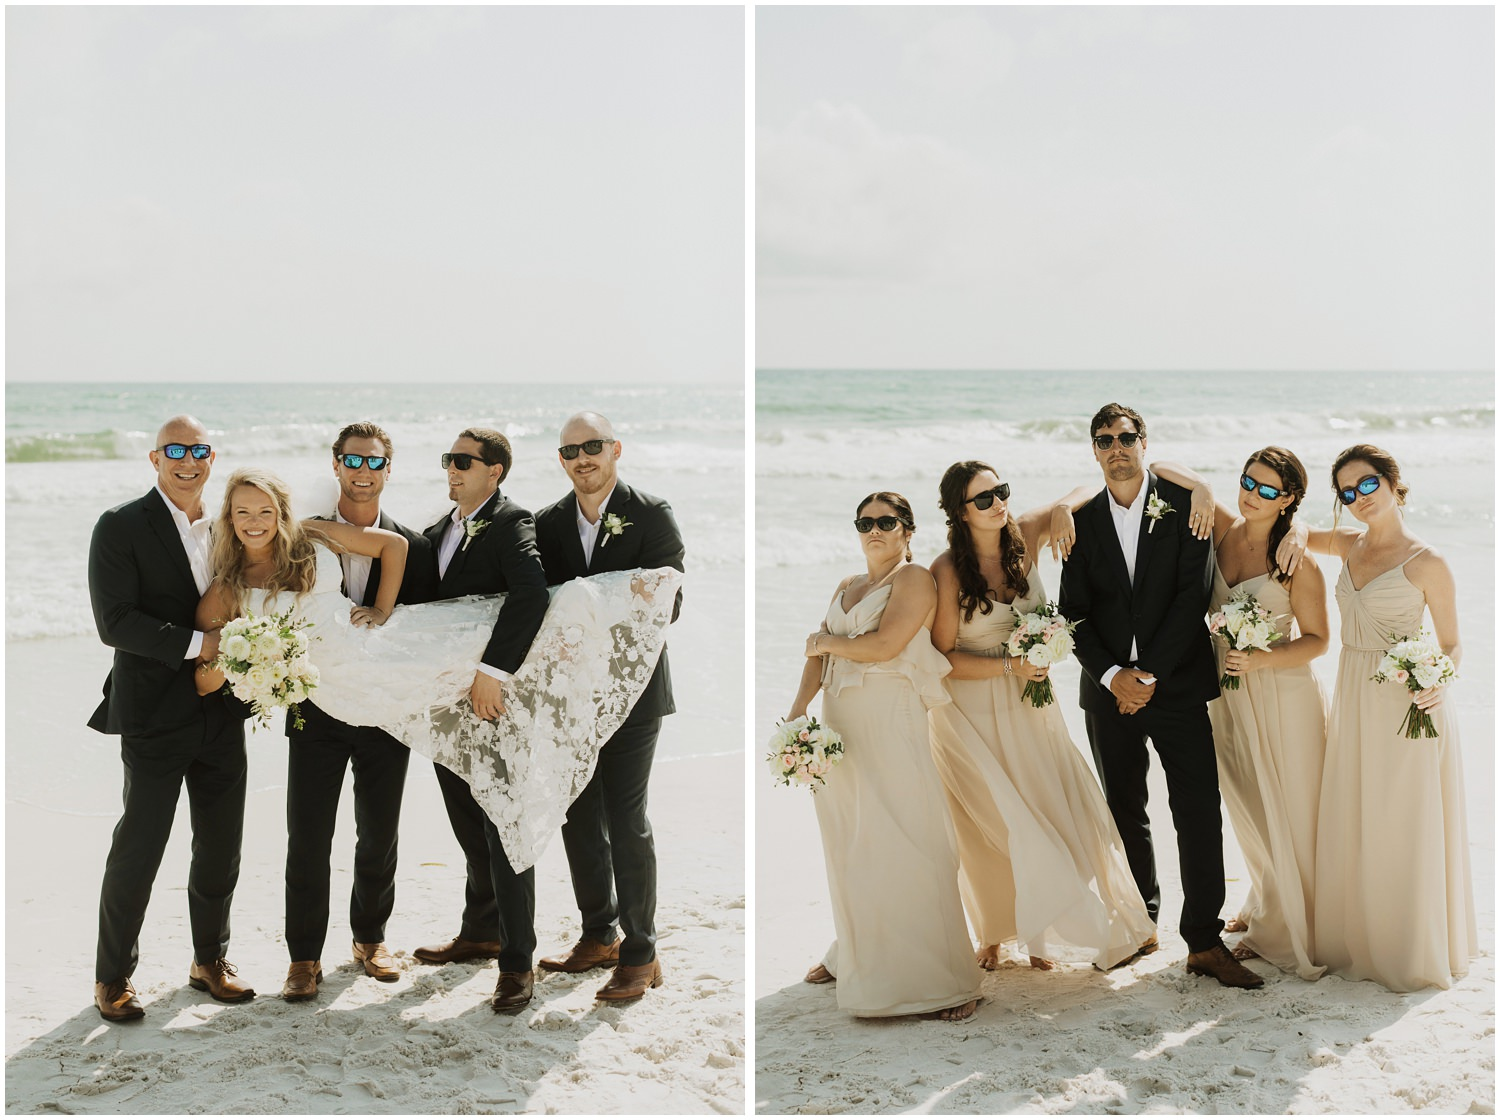 Bridal Party Bud and Alley's Seaside Wedding